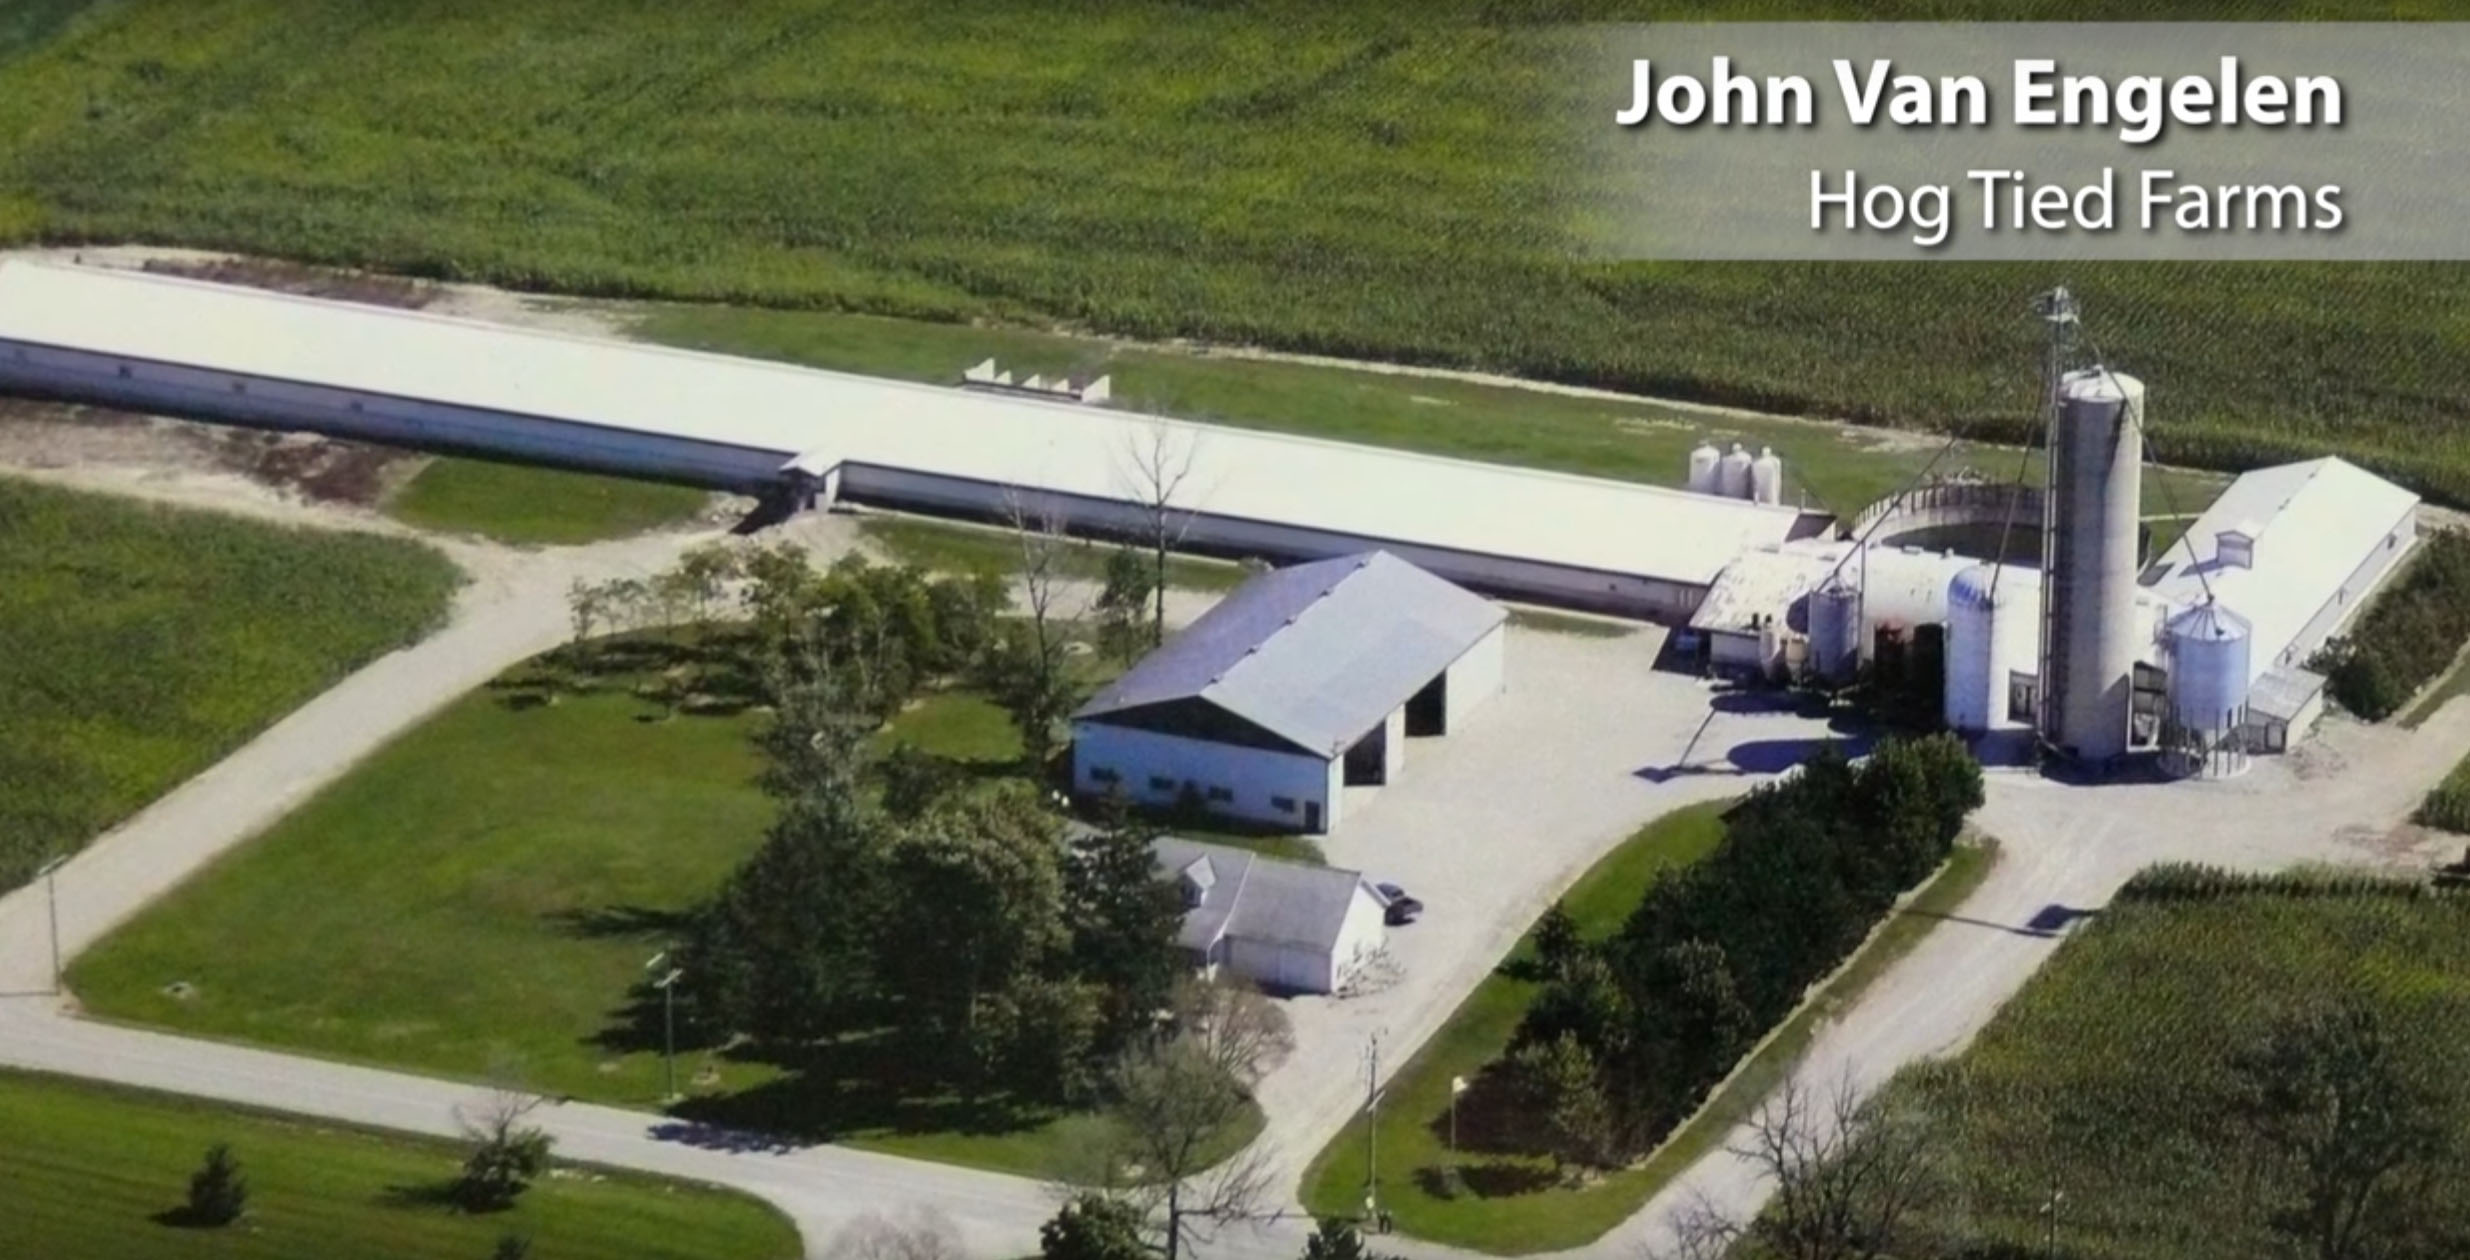 Group Sow Housing, John Van Engelen, Hog Tied Farms, Ontario, Canada